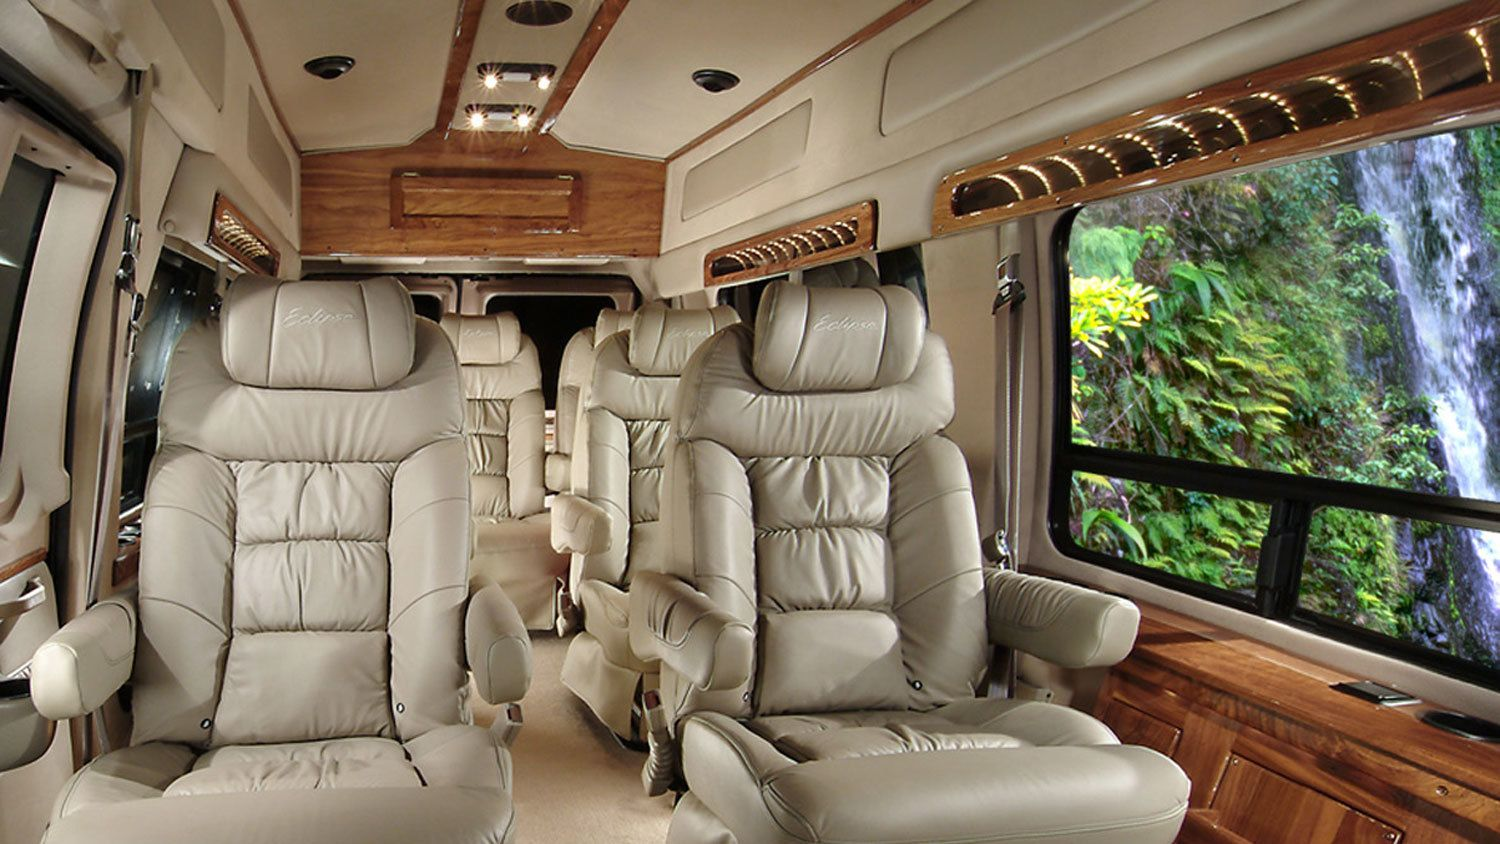 Interior of limo for Hana tour in Maui